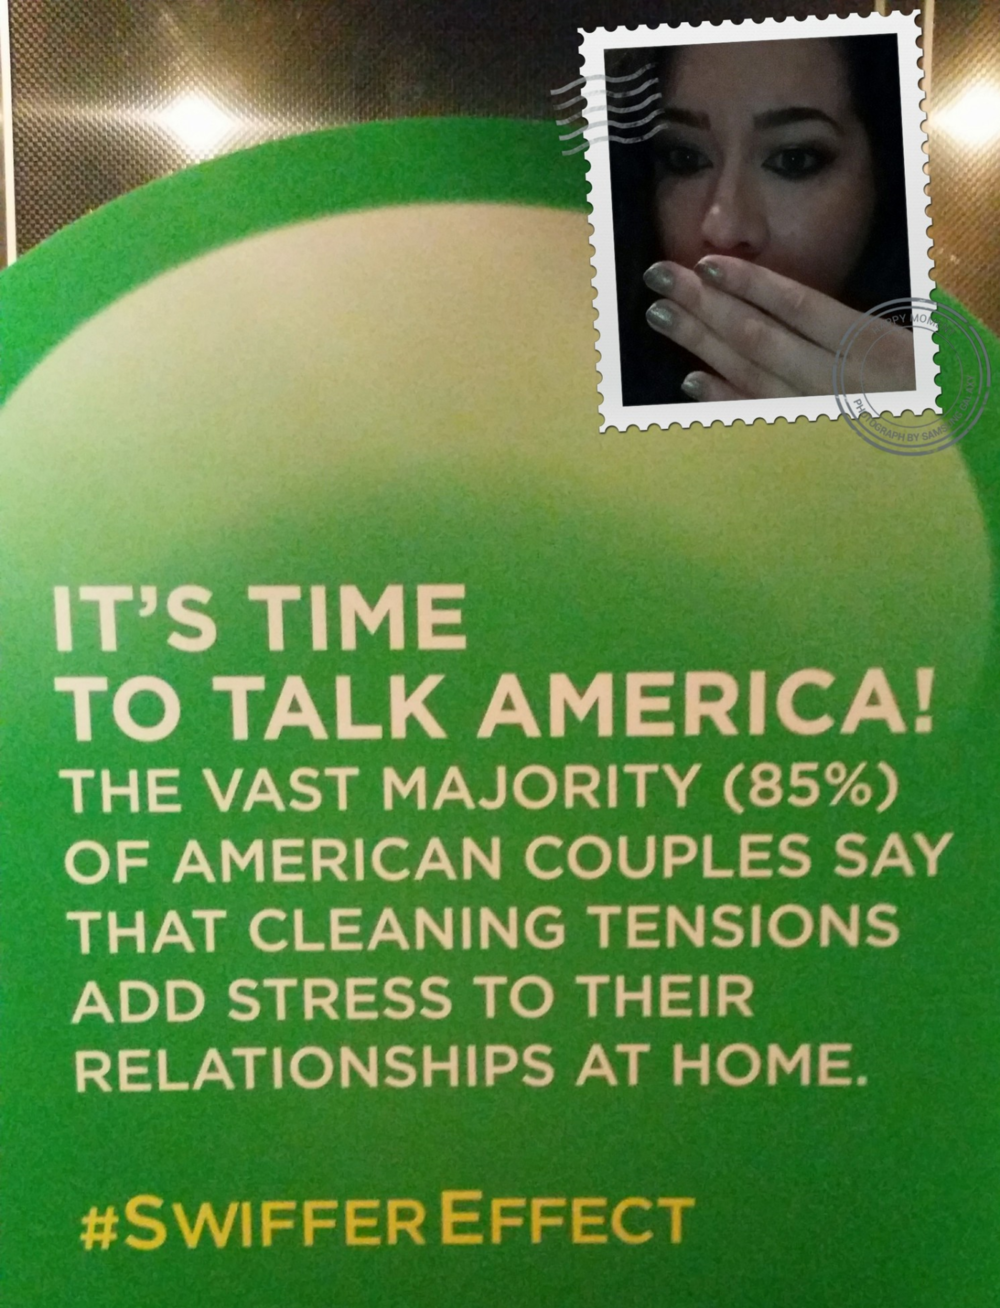 85 of couples say cleaning tensions add to stress at home